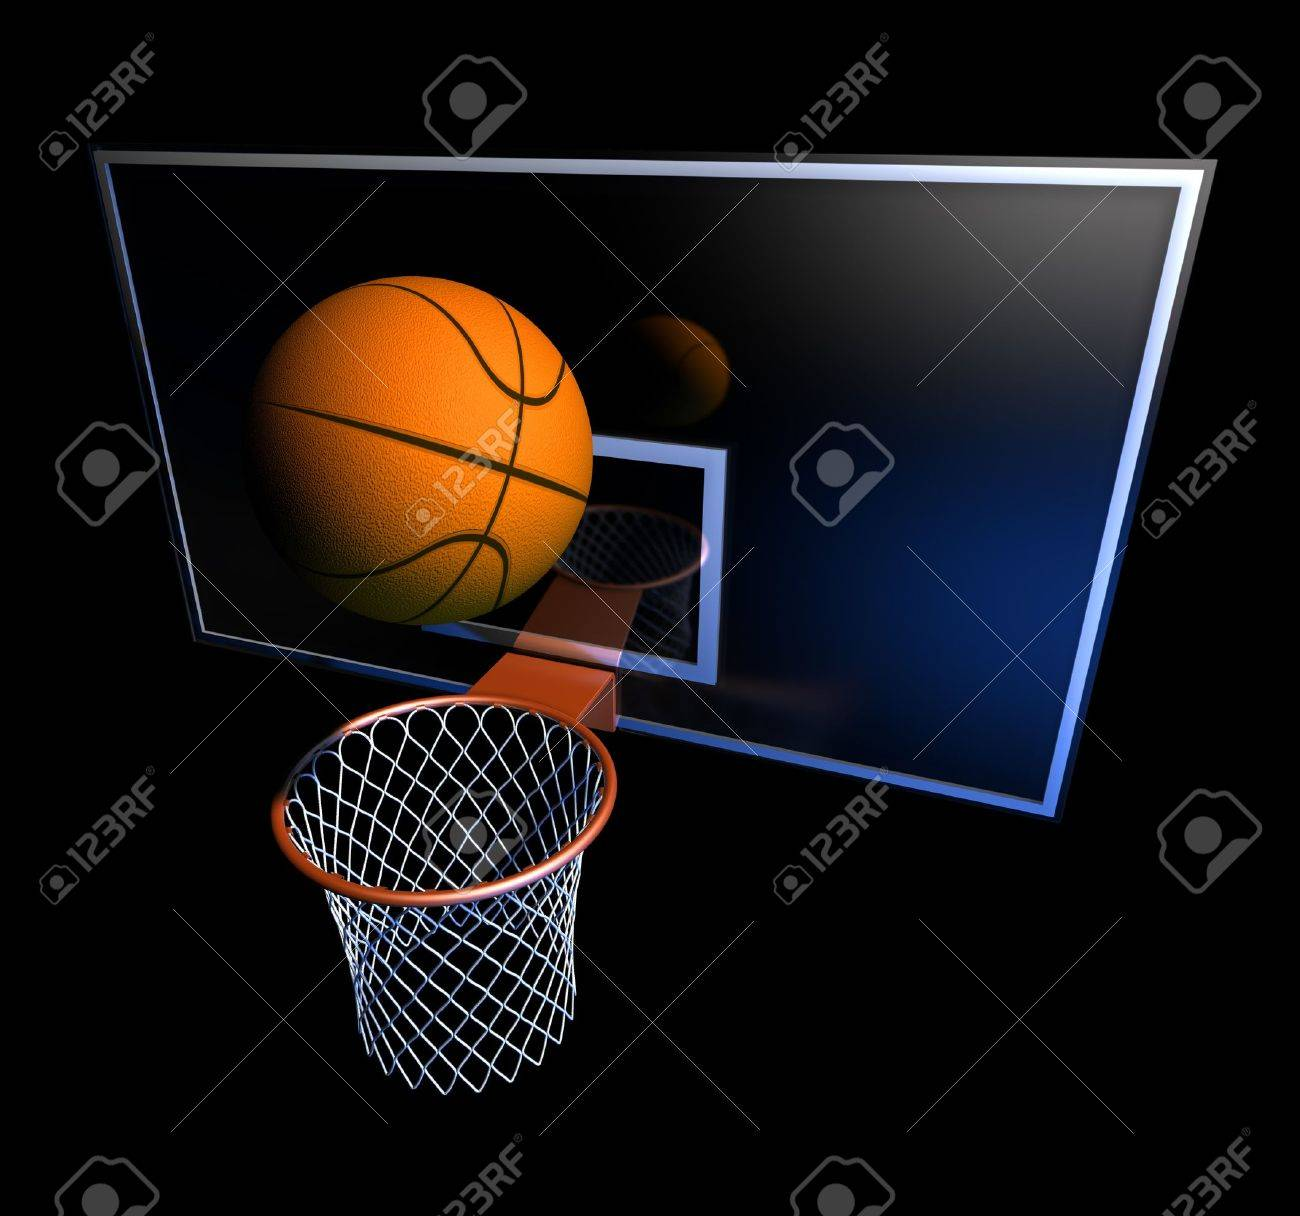 Basketball Ball Stock Illustration